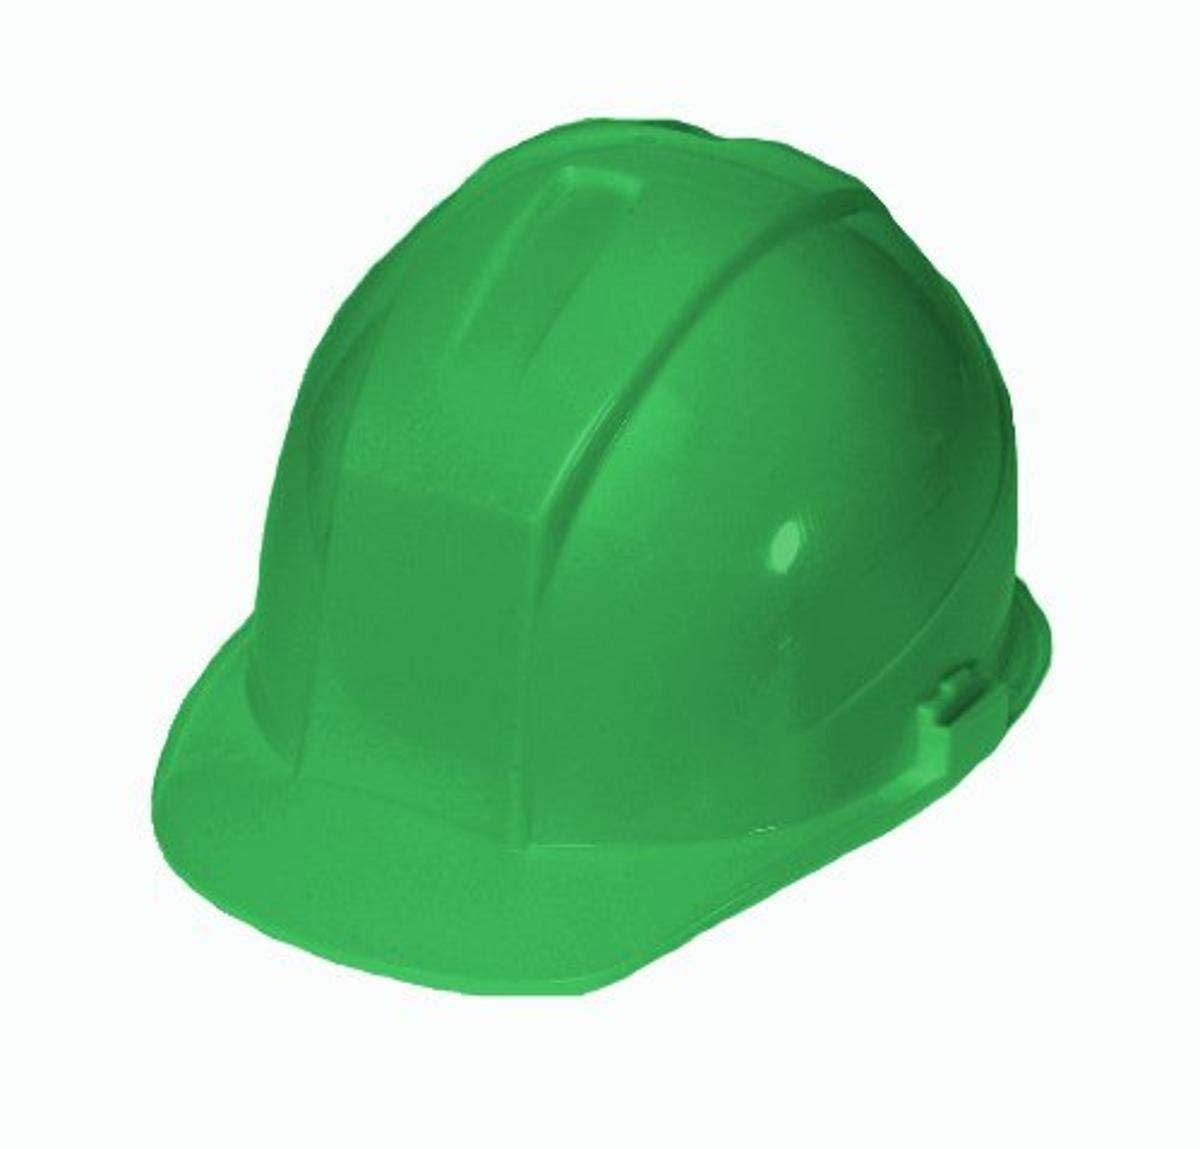 Carolina Glove & Safety 42002-G Green Cap Style Hard Hat, 4 Point Ratchet, Regular, Green